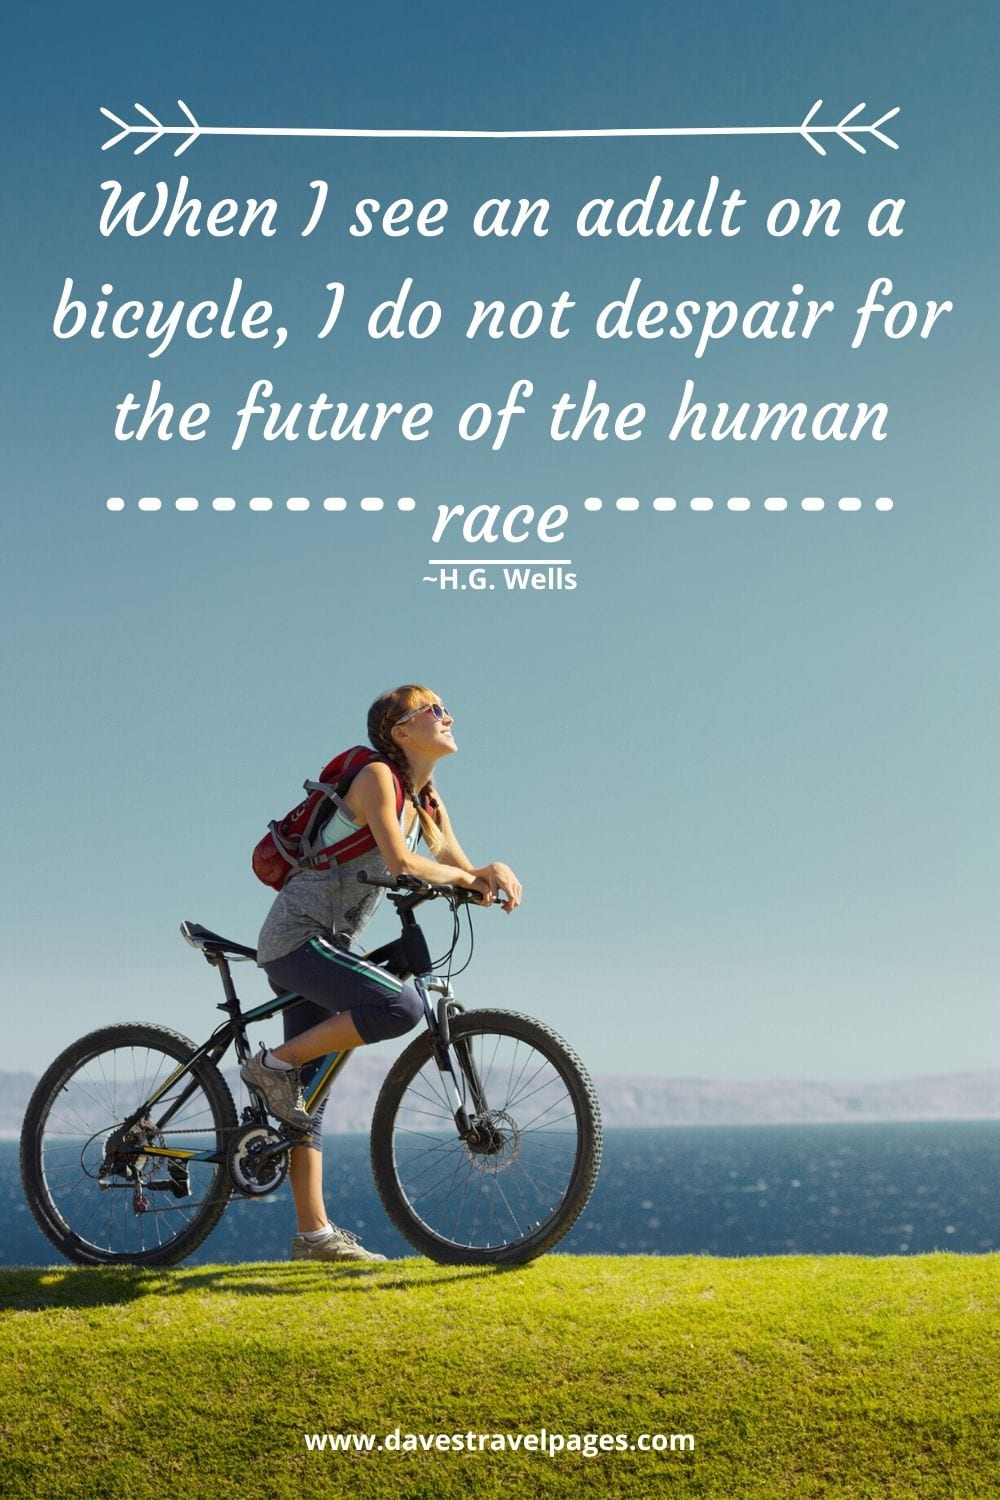 When I see an adult on a bicycle, I do not despair for the future of the human race. ~H.G. Wells quotation